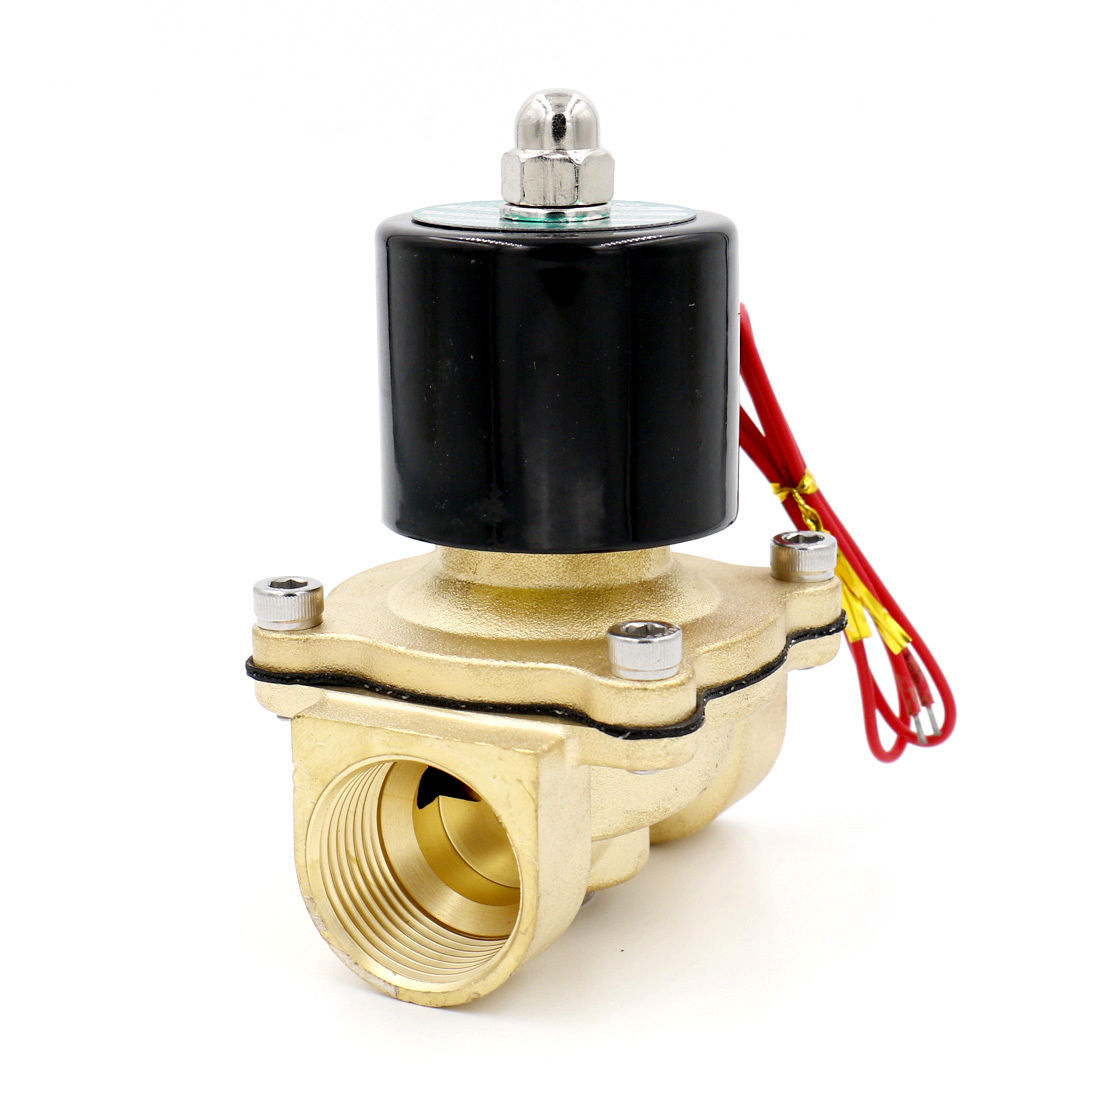 Brass Electric Solenoid Valve 2W-250-25 1 NPT 2/2 way female to female 12V NC female to female f f 1 2 pt threaded yellow lever handle brass ball valve